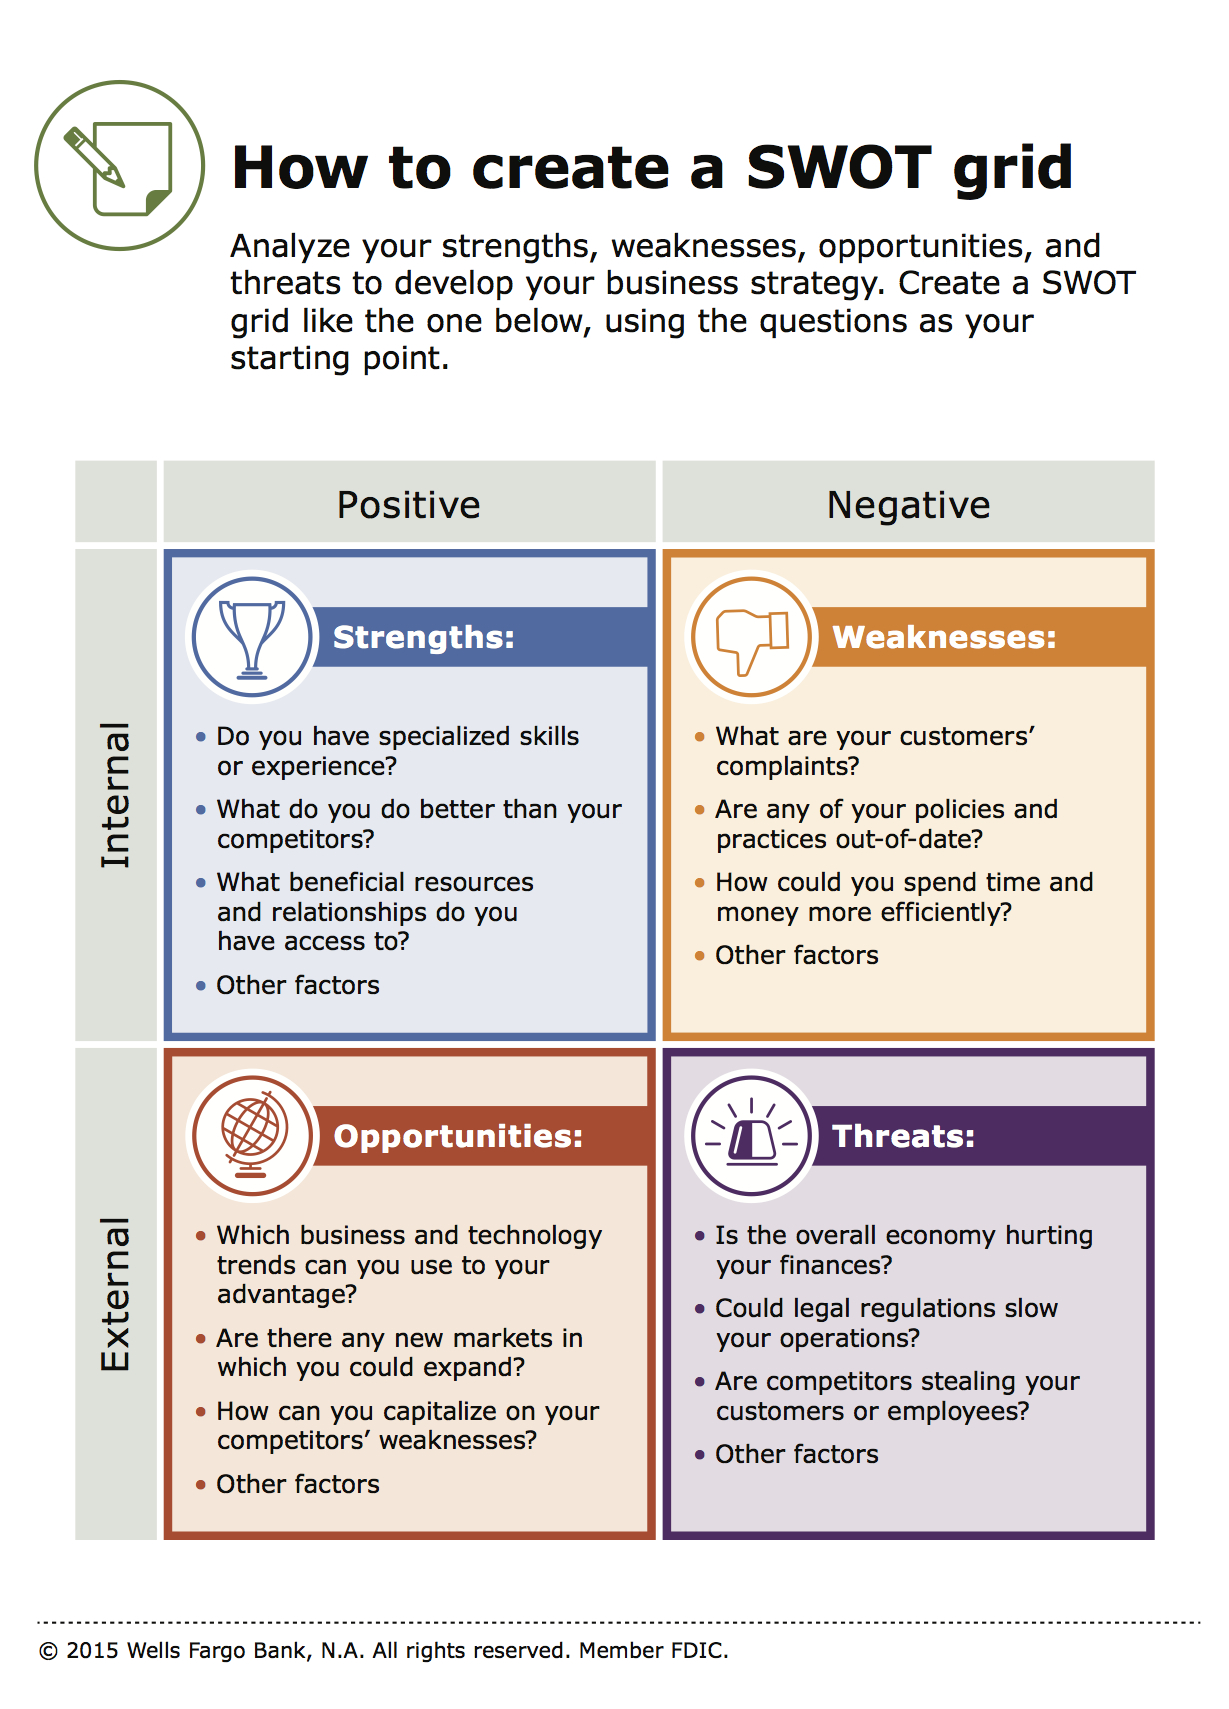 SWOT Analysis Opportunities: Definition & Examples